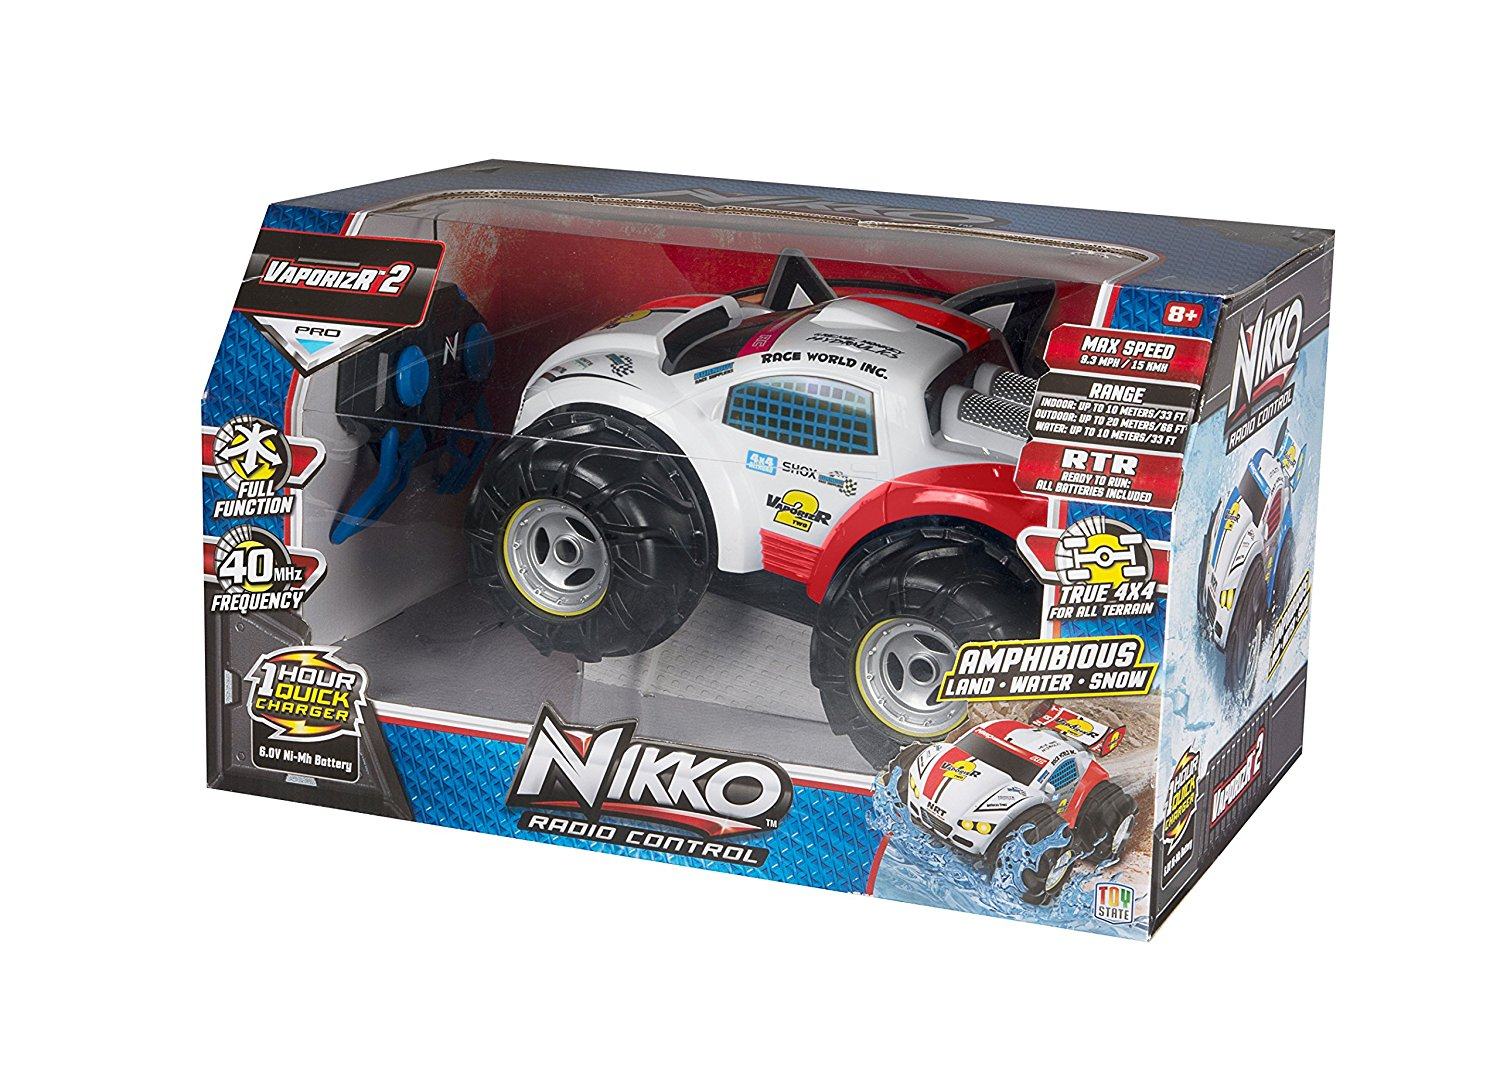 Amazon.com: Toy State Nikko VaporizR 2 Red Radio Control Vehicle.